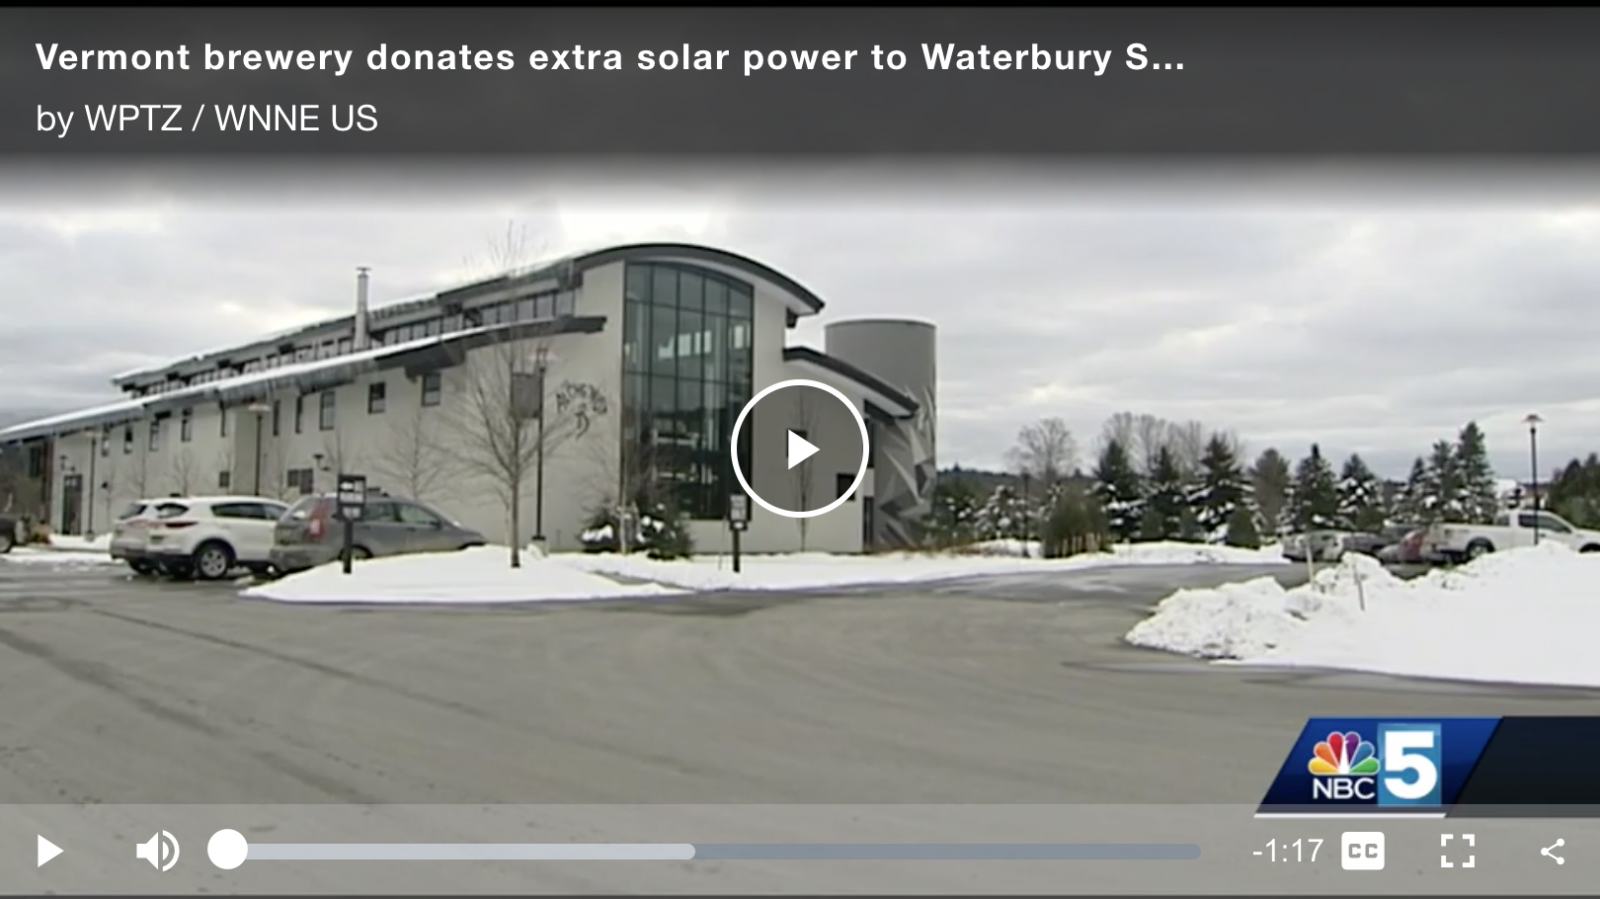 WPTZ Video Link for Alchemist Solar Cannery Story